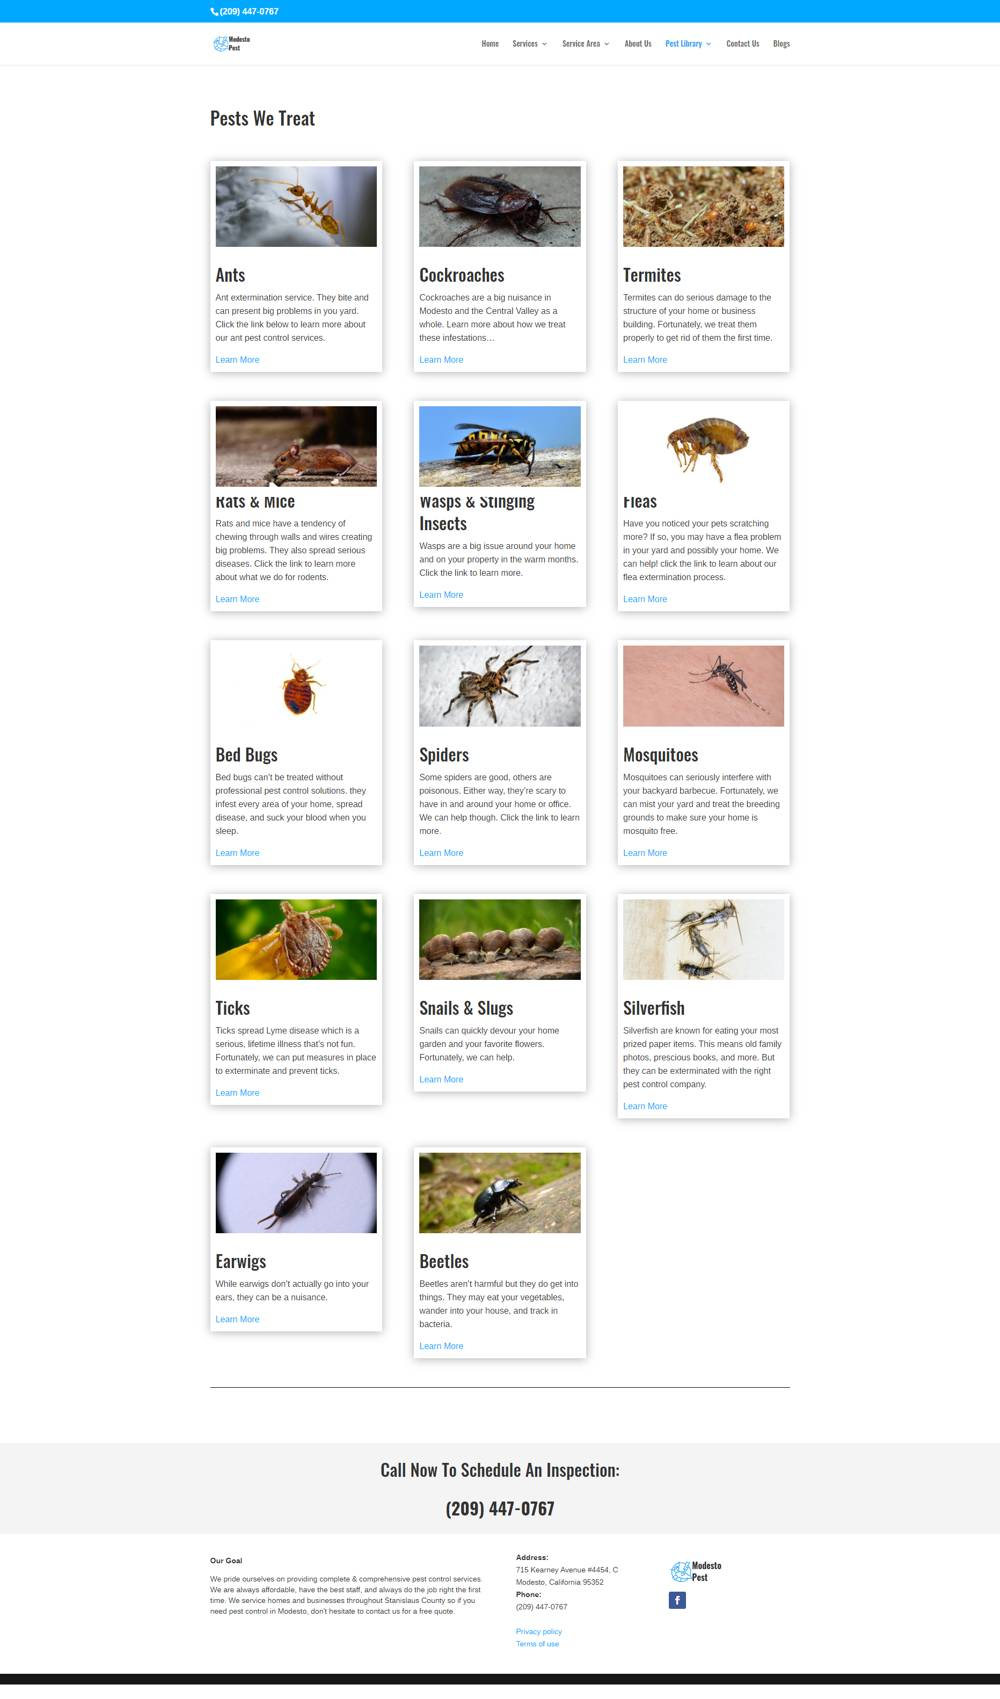 pest library image